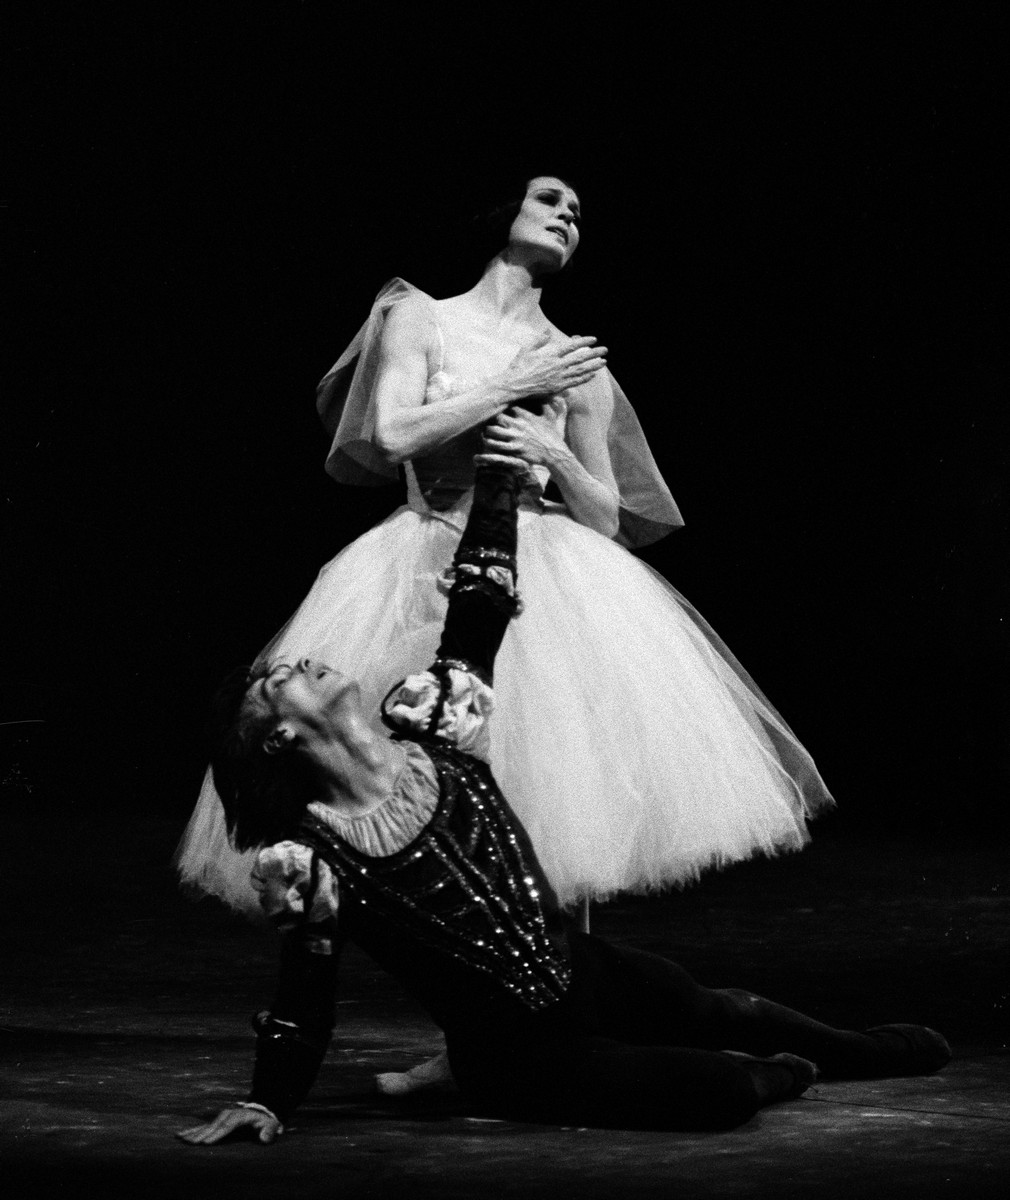 Giselle con Carla Fracci with Gheorghe Iancu in Giselle in 1983, photo by Lelli Masotti